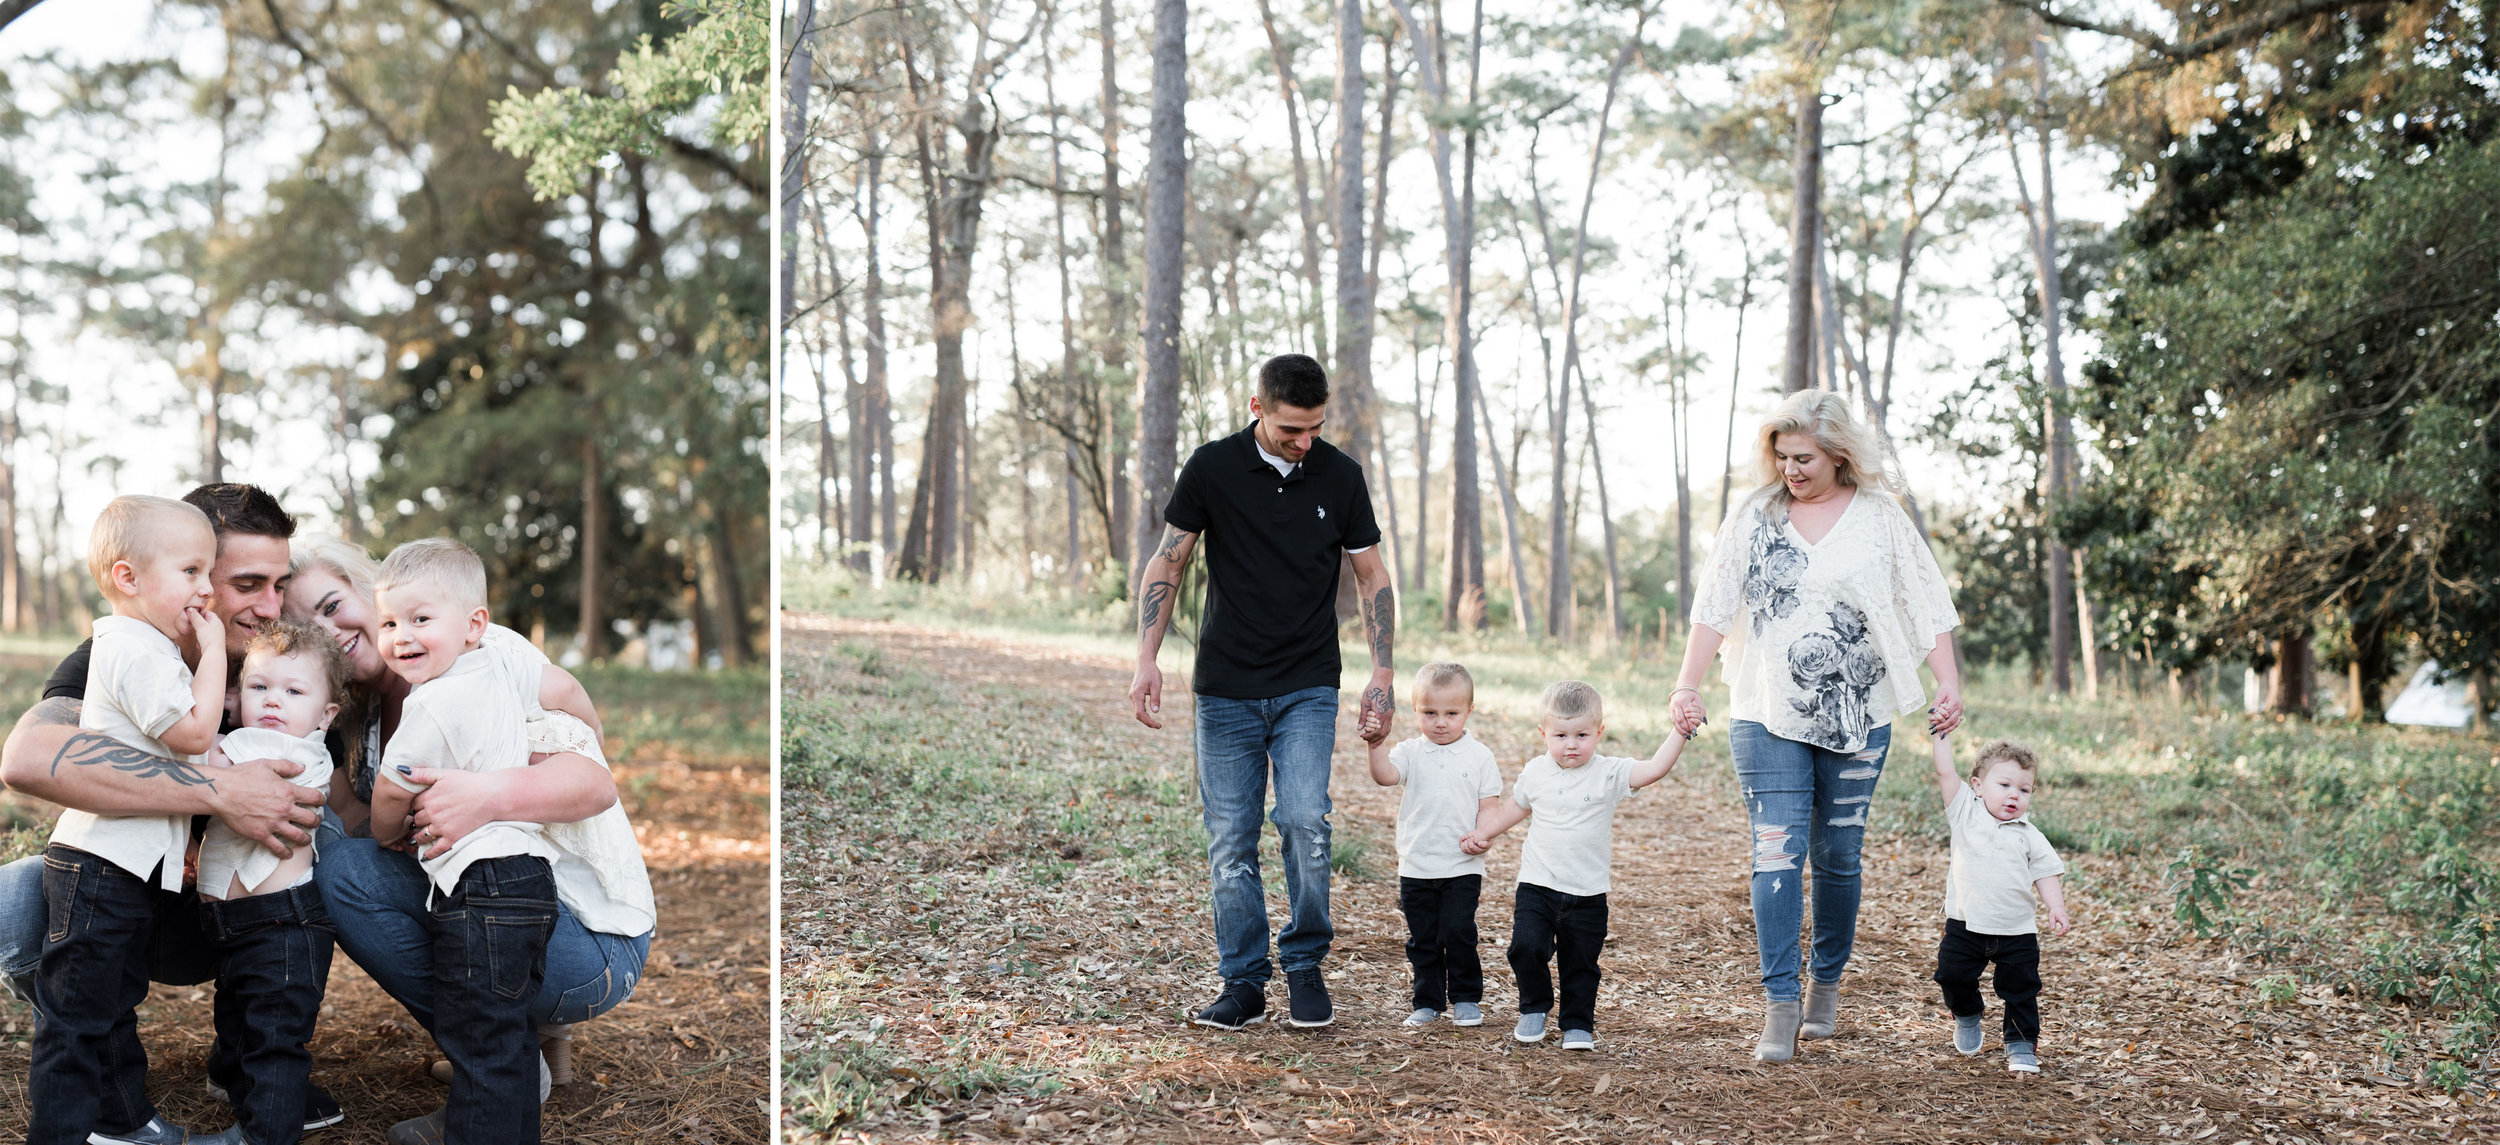 Downtown Fairhope Family Photoshoot by Kristen Grubb Photography